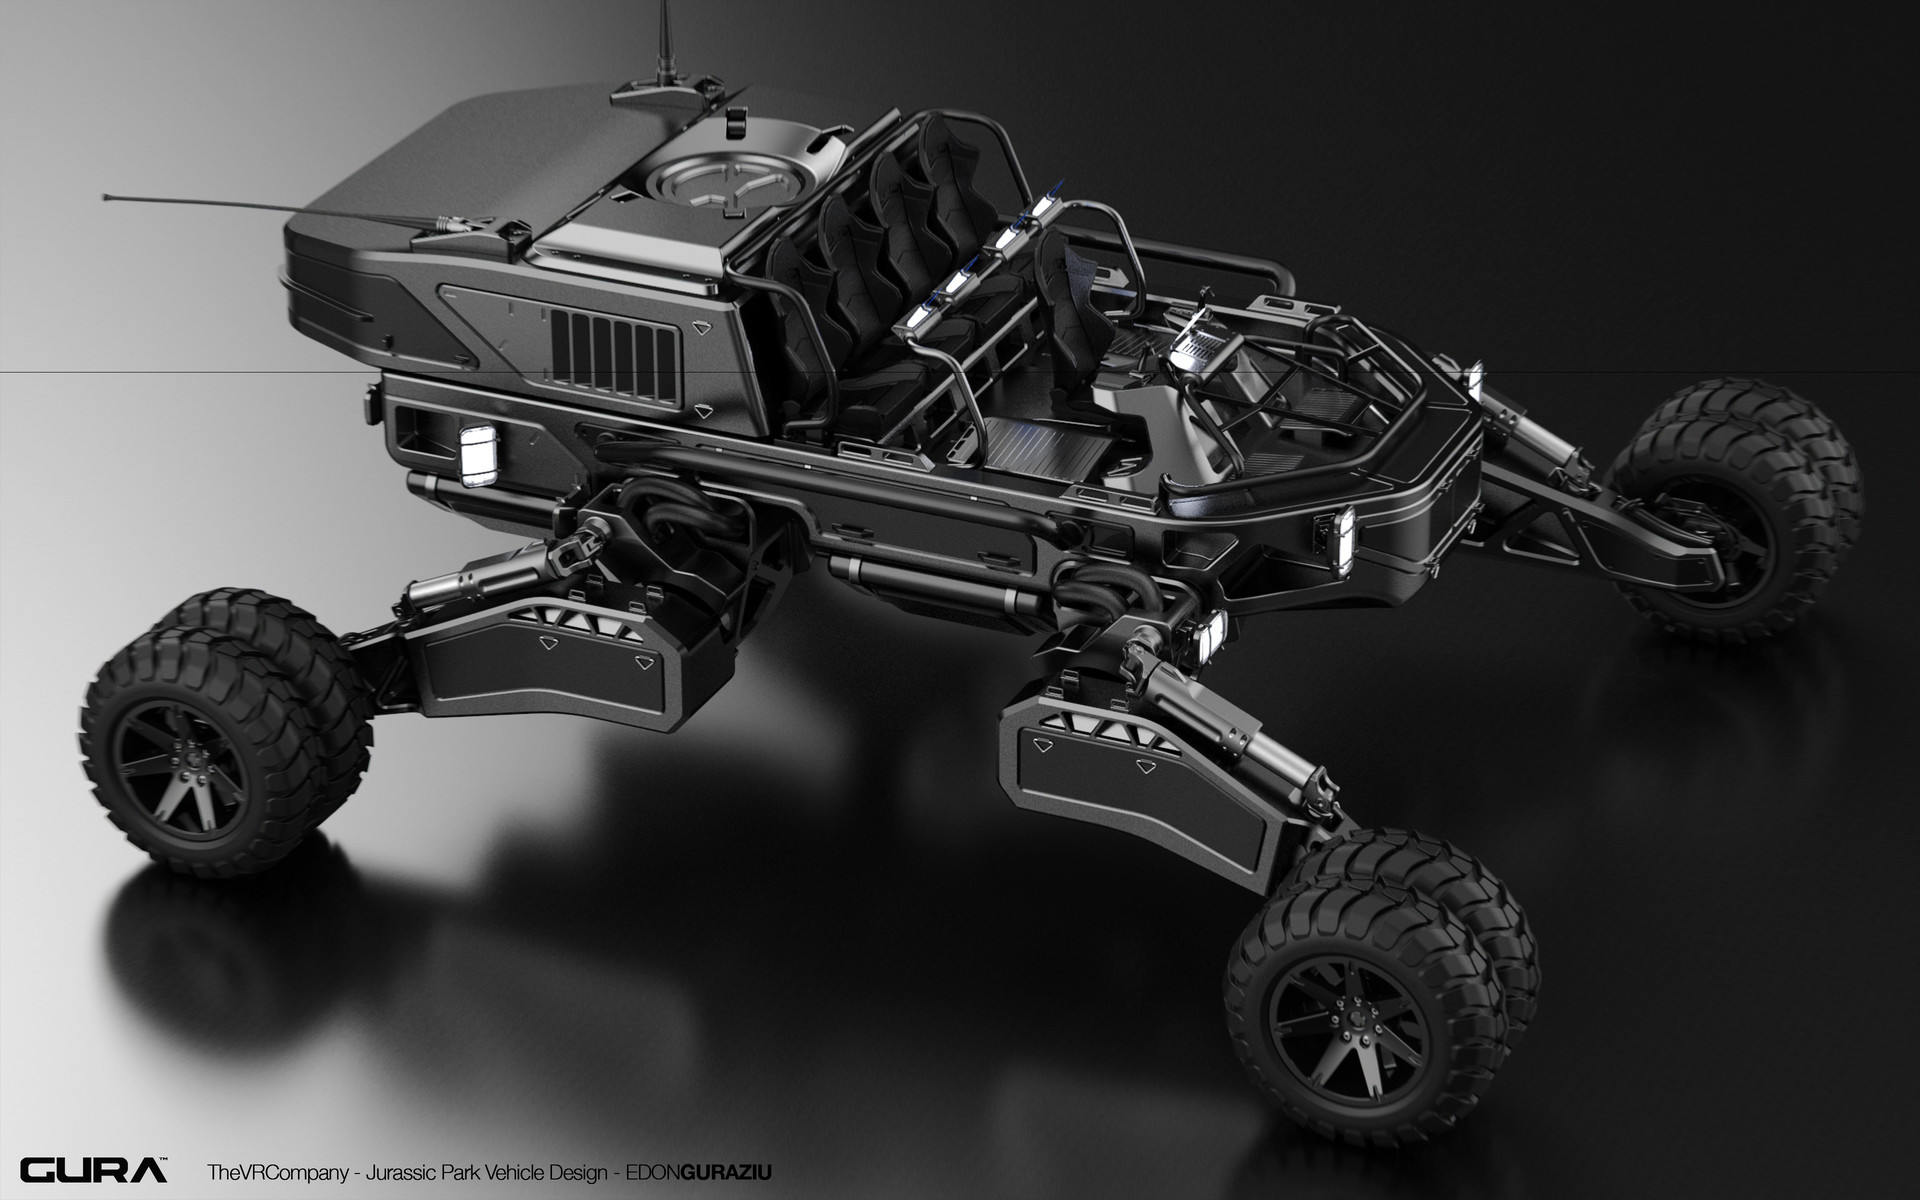 Edon guraziu vr vehicle design black 02